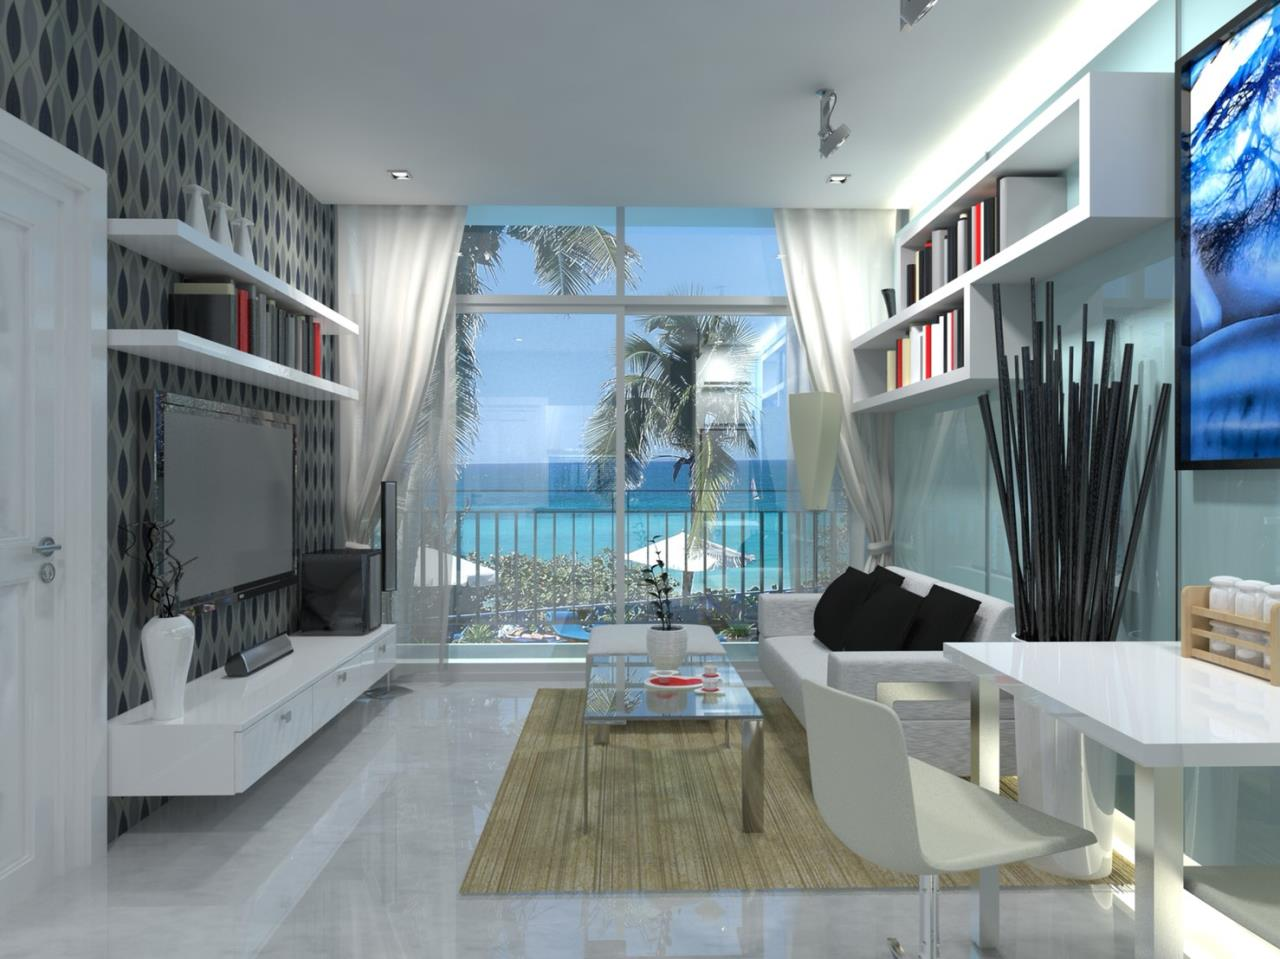 Signature Realty ( Thailand ) Co Ltd Agency's Furnished 2bedroom 40 sq.m condo floor 11-20 at The Grand Jomtein Beach Pattaya 21